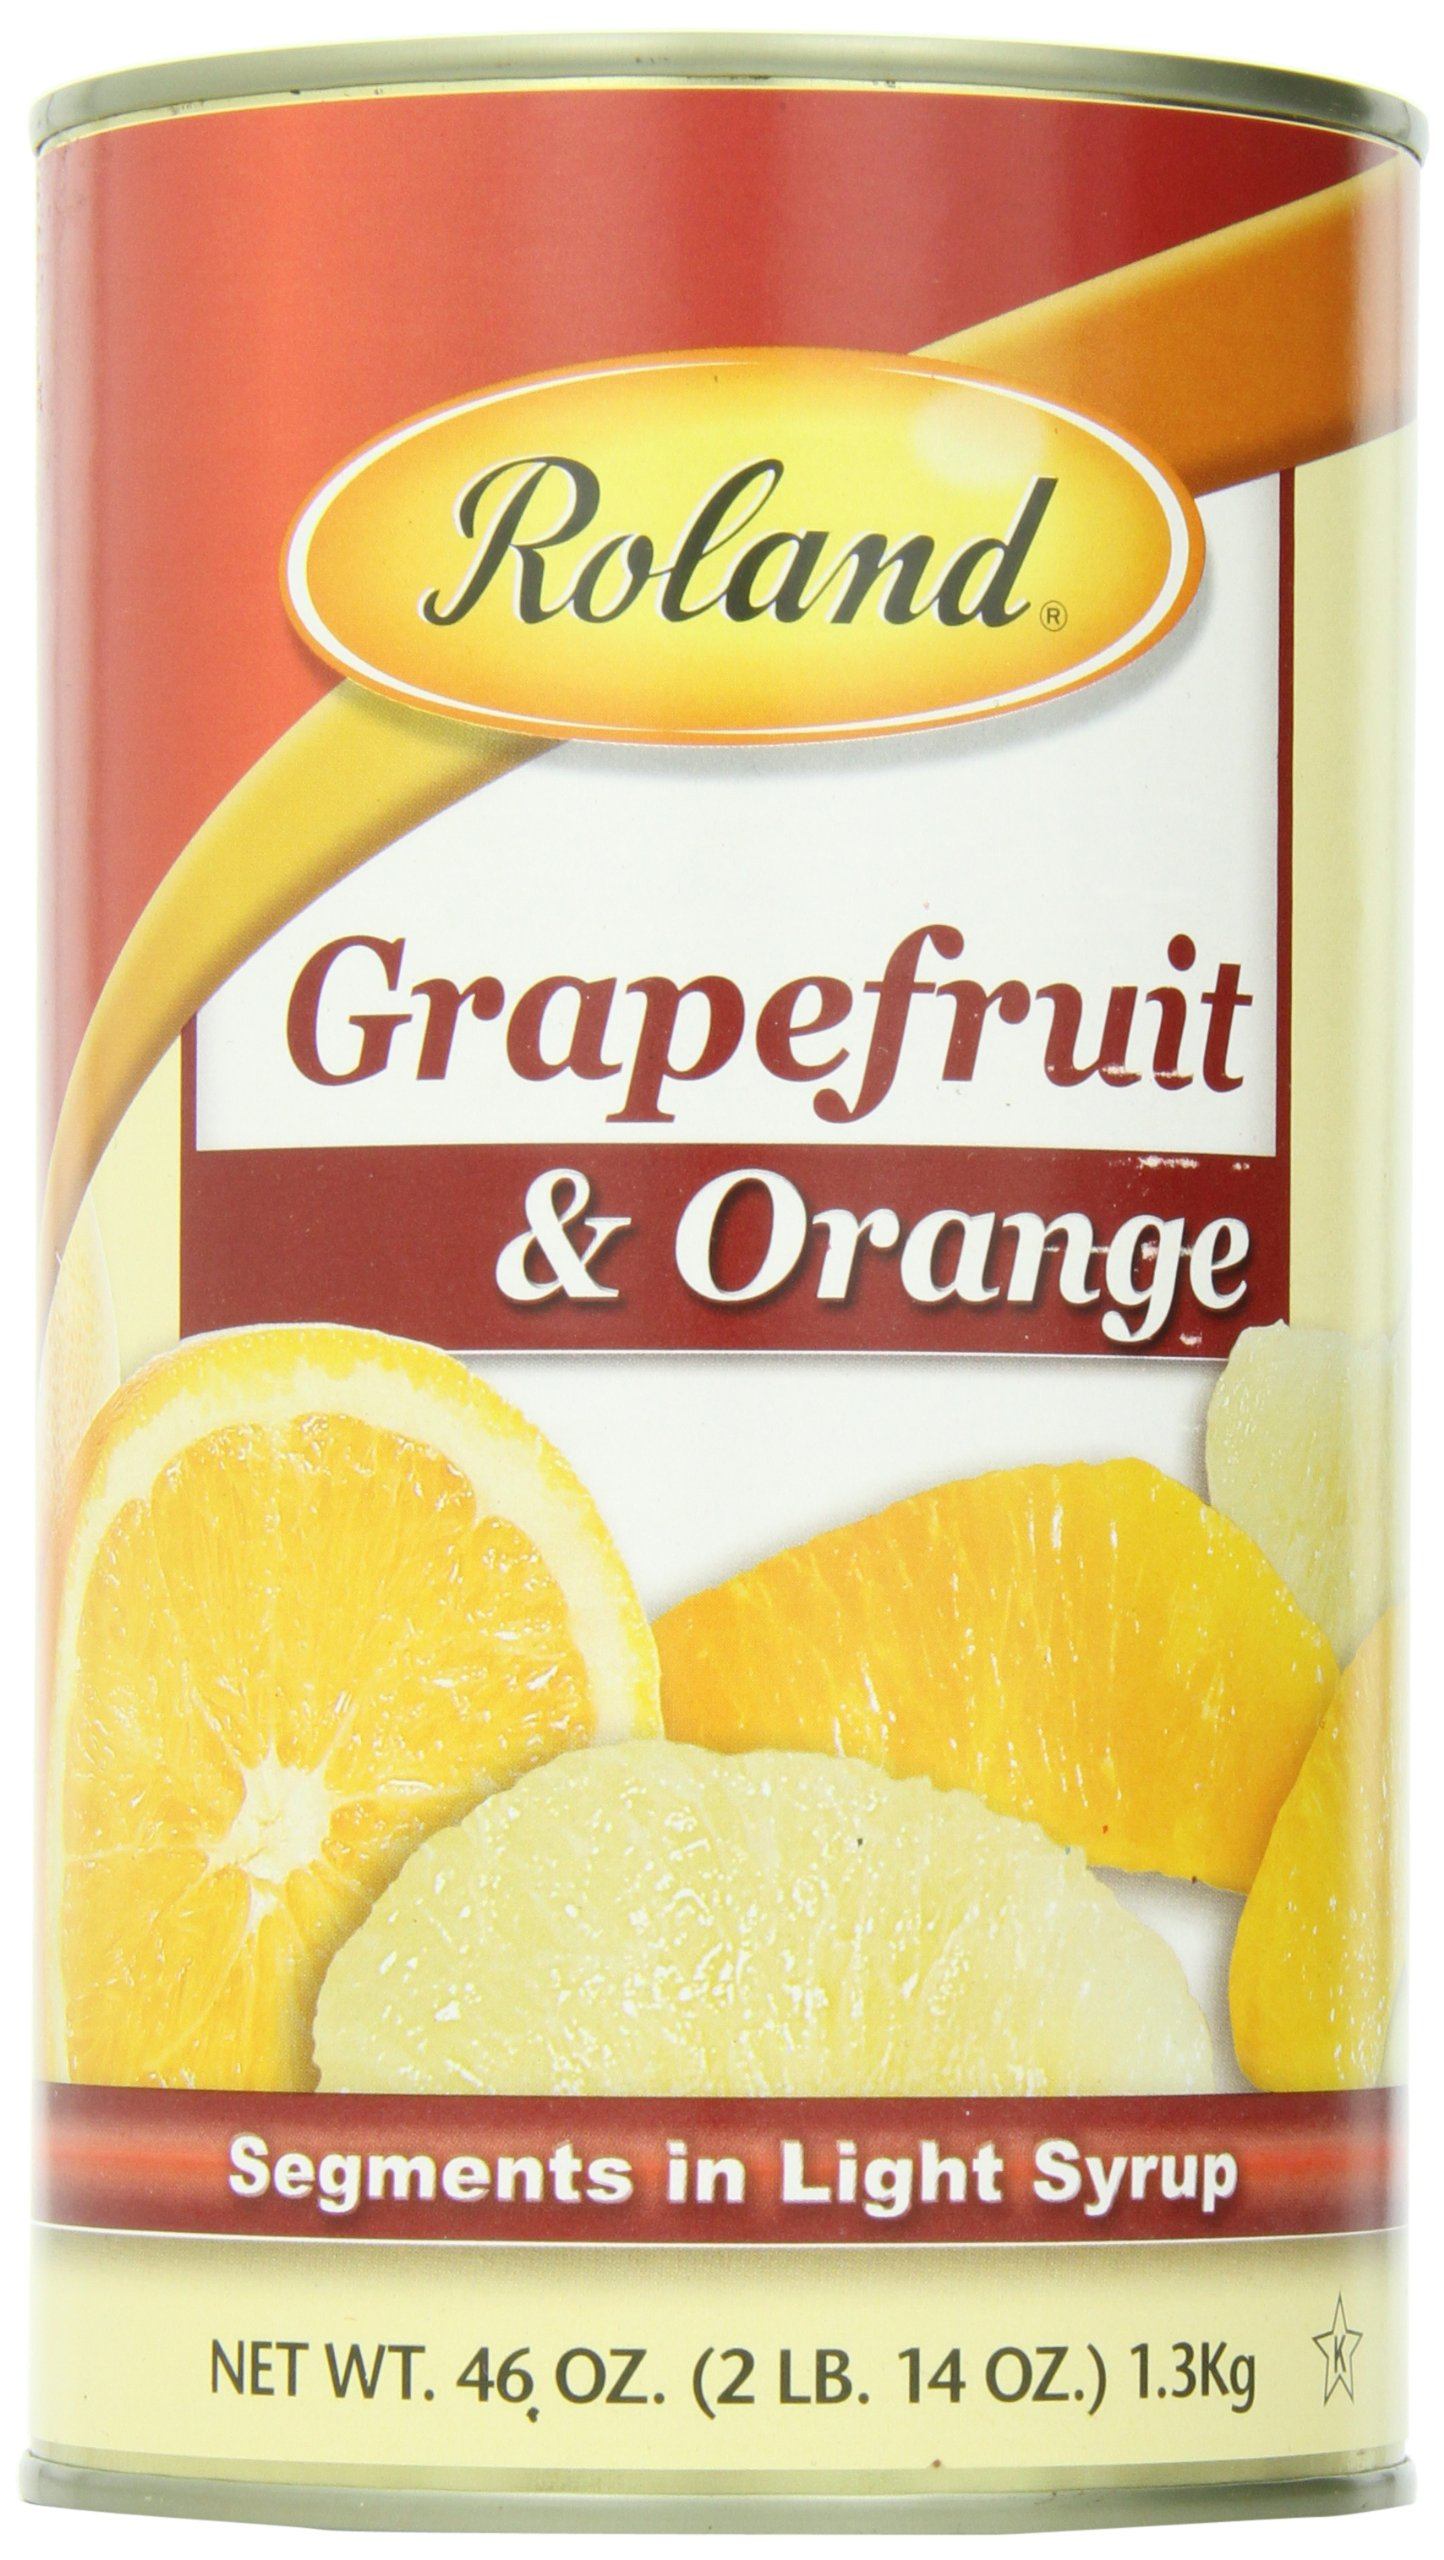 Roland Grapefruit & Orange,Segments in Light Syrup, 46 Ounce (Pack of 3)